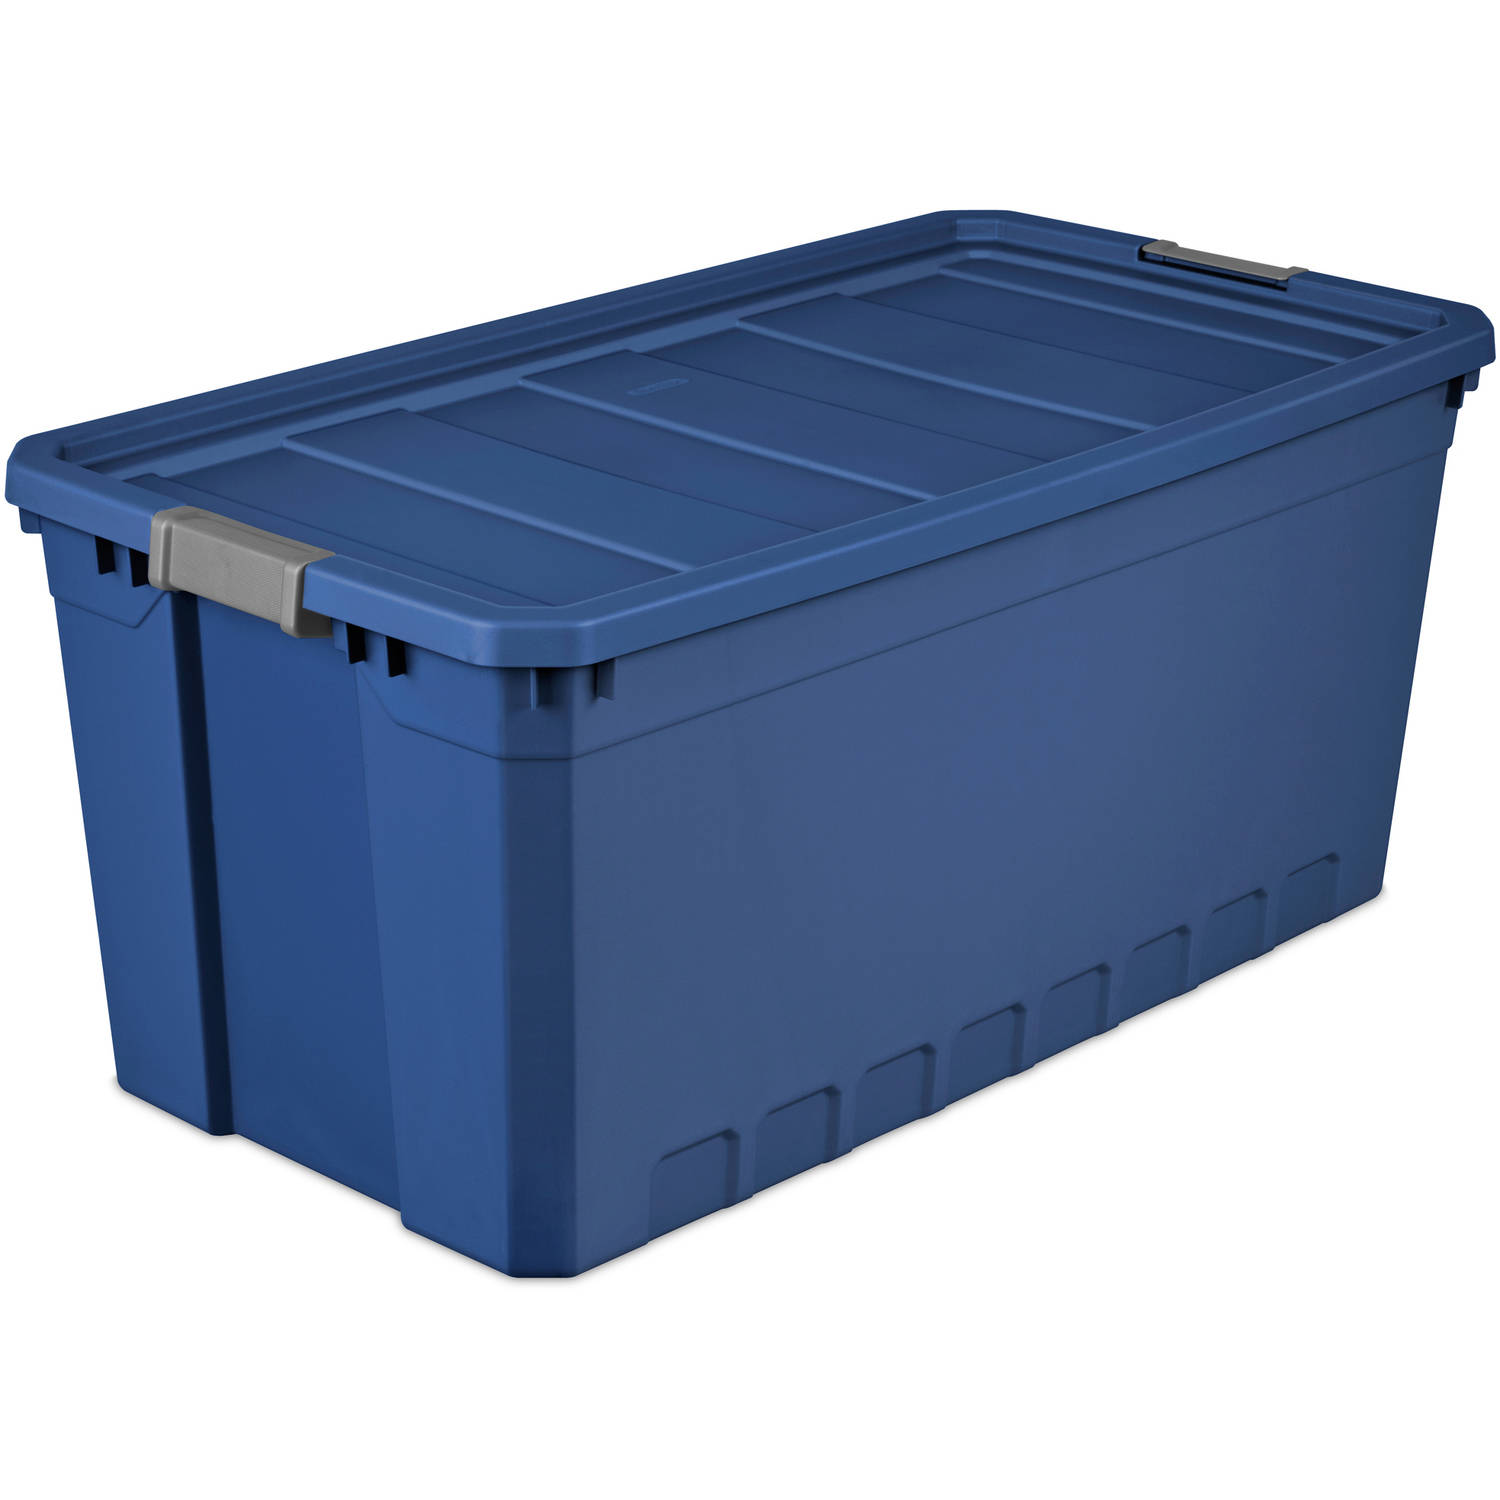 Sterilite 50 Gallon Stacker Tote- Stadium Blue (Available in Case of 3 or Single Unit)